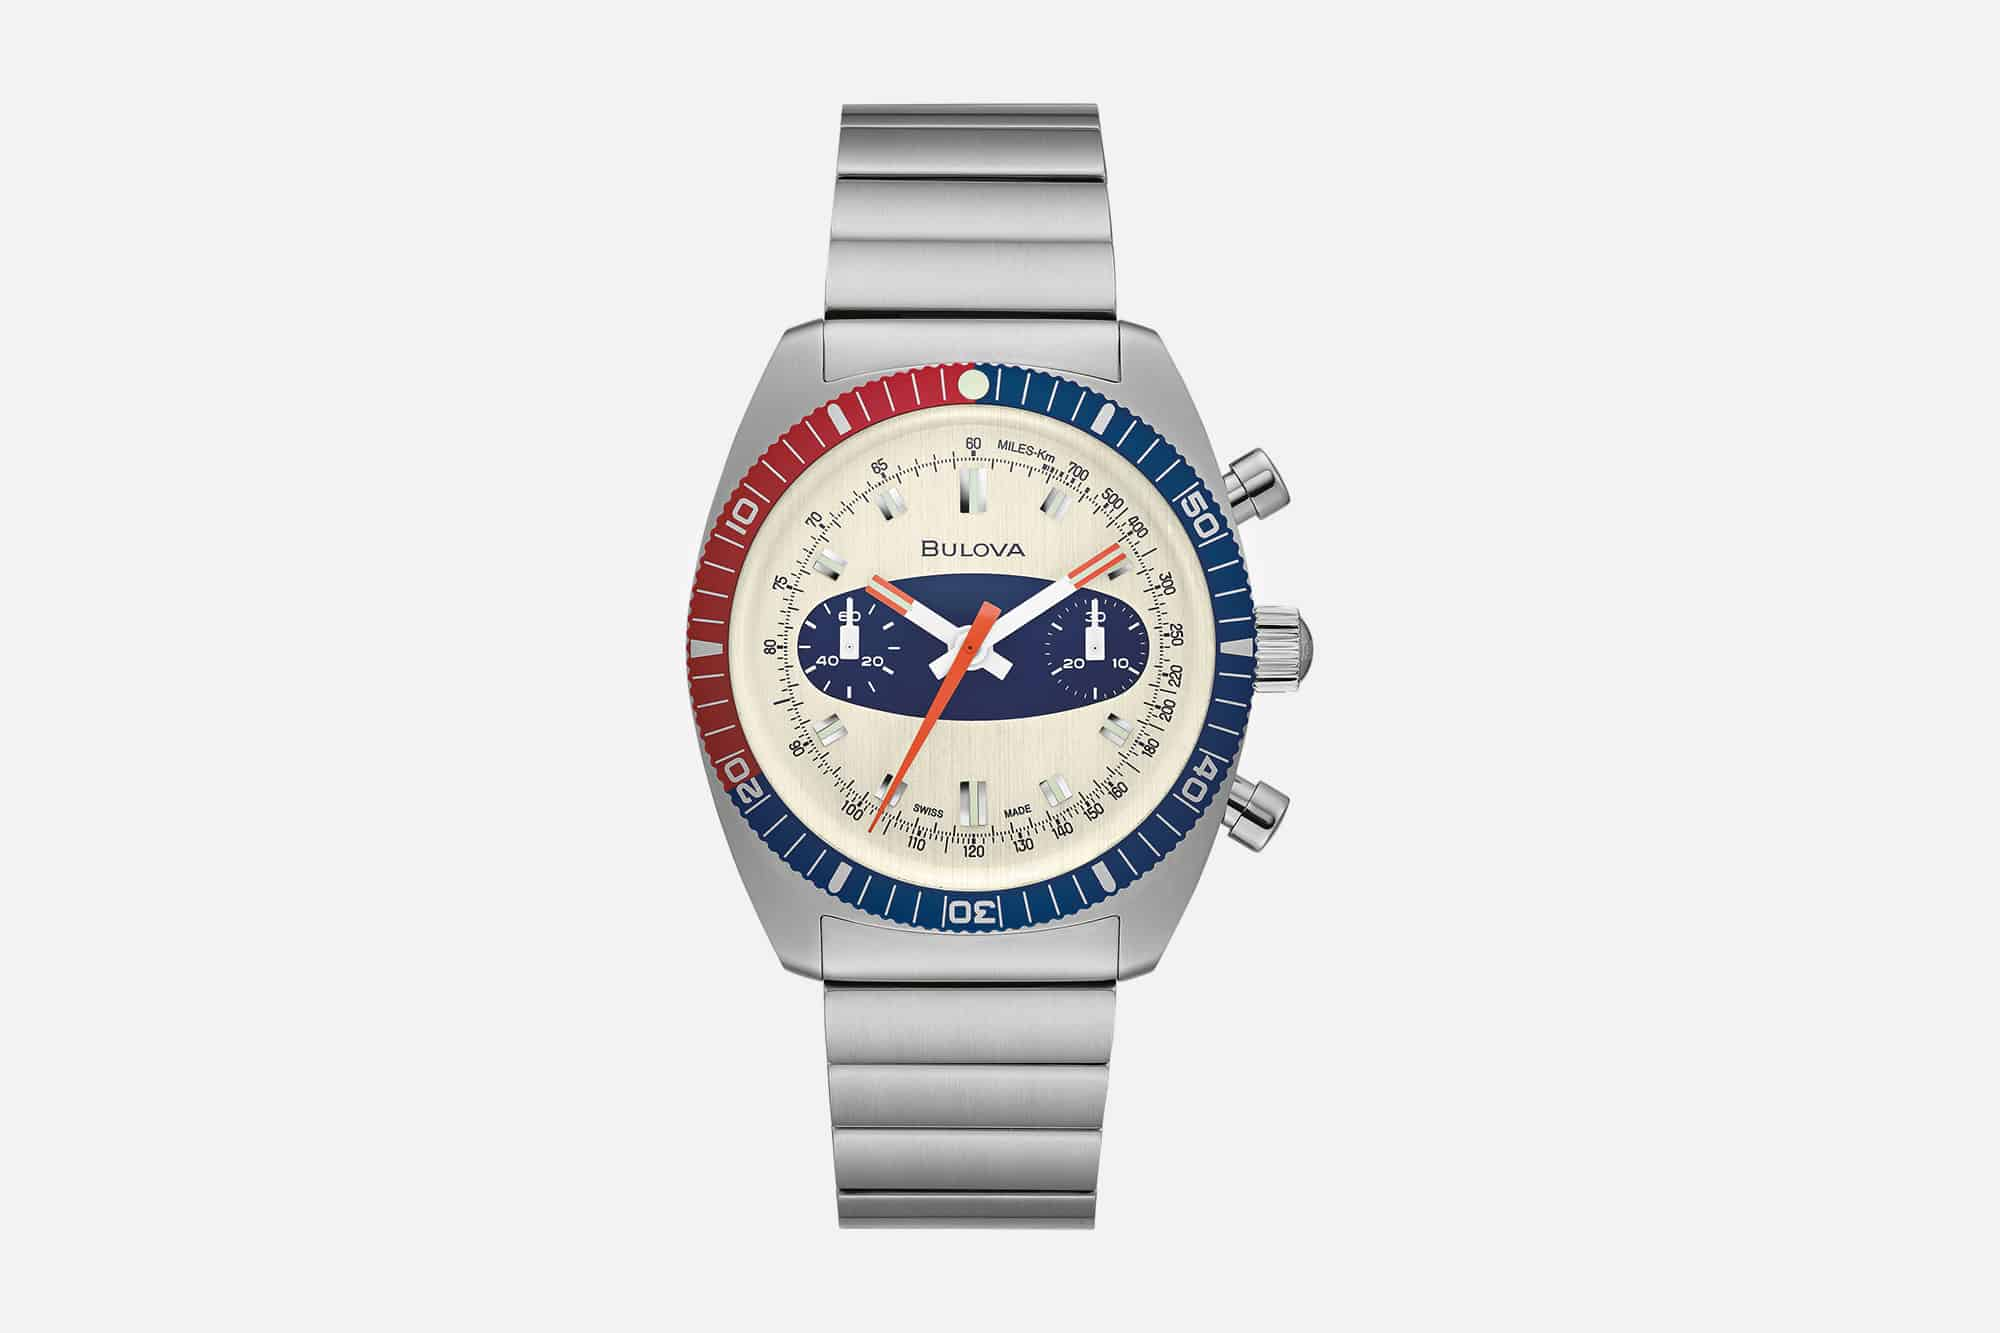 Bulova's Iconic Surfboard Chronograph Gets a Re-Issue at Multiple Price Points for Any Budget